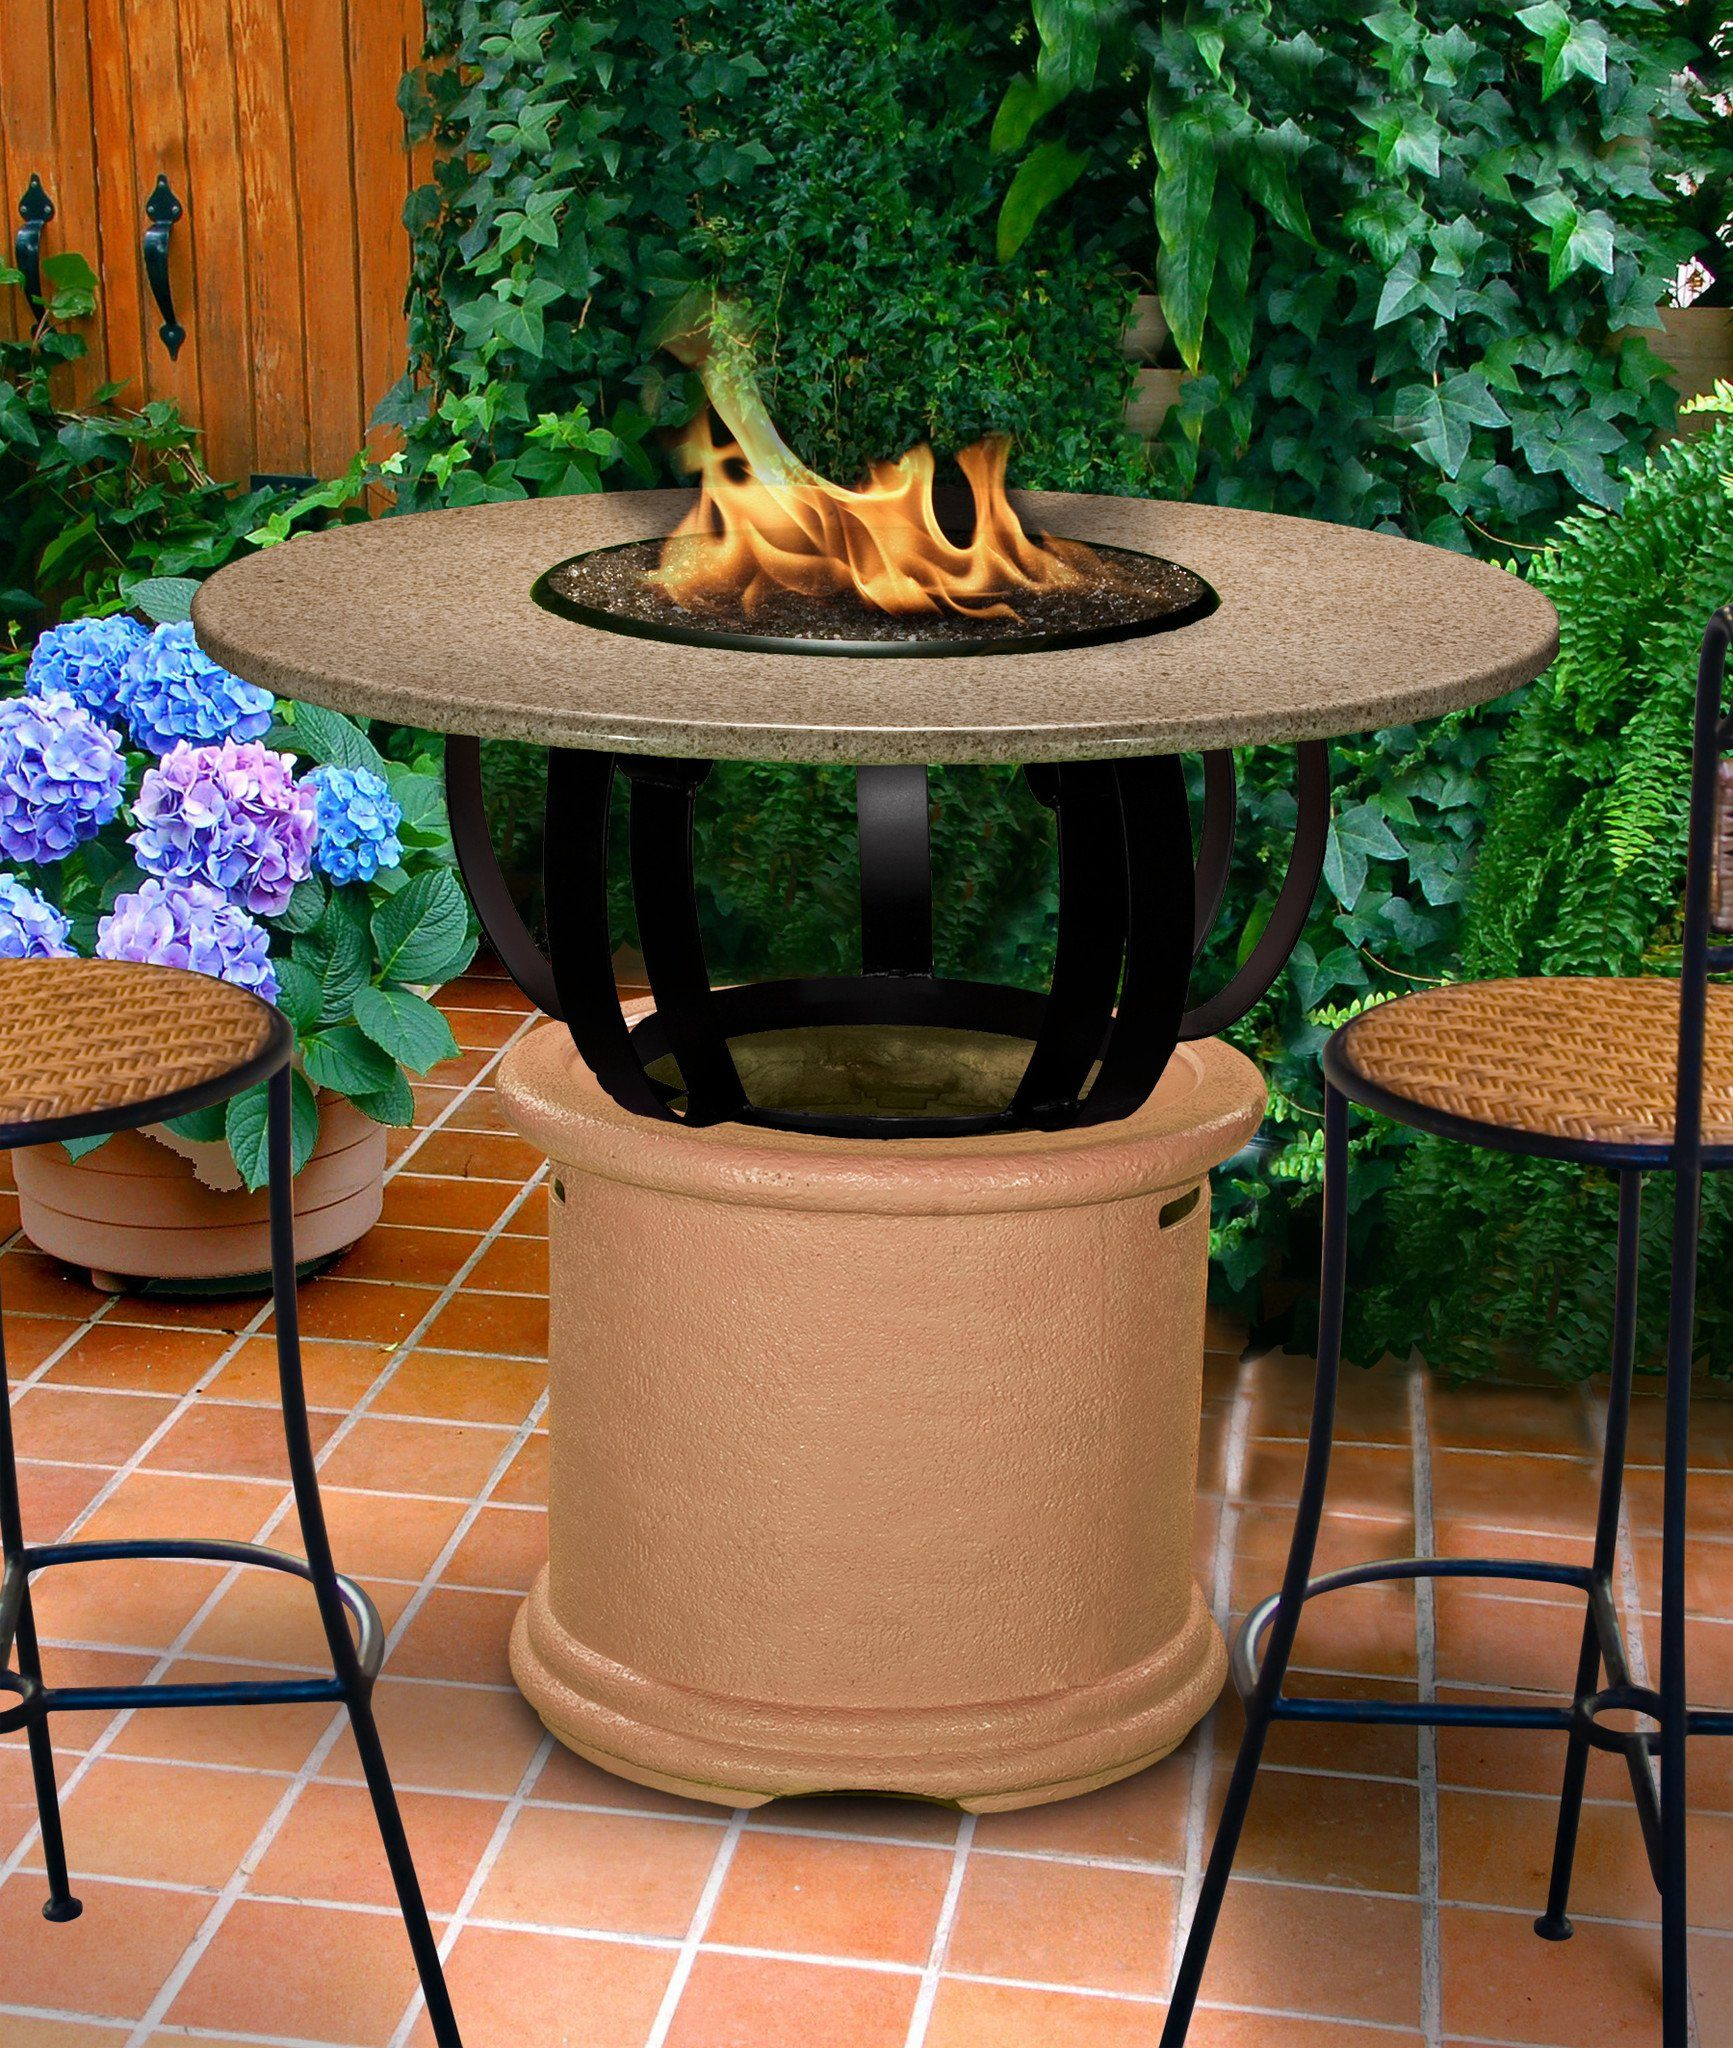 Del mar bar height gaspropane fire pit table fire pit plaza fire pit table del mar bar height gaspropane fire pit table watchthetrailerfo